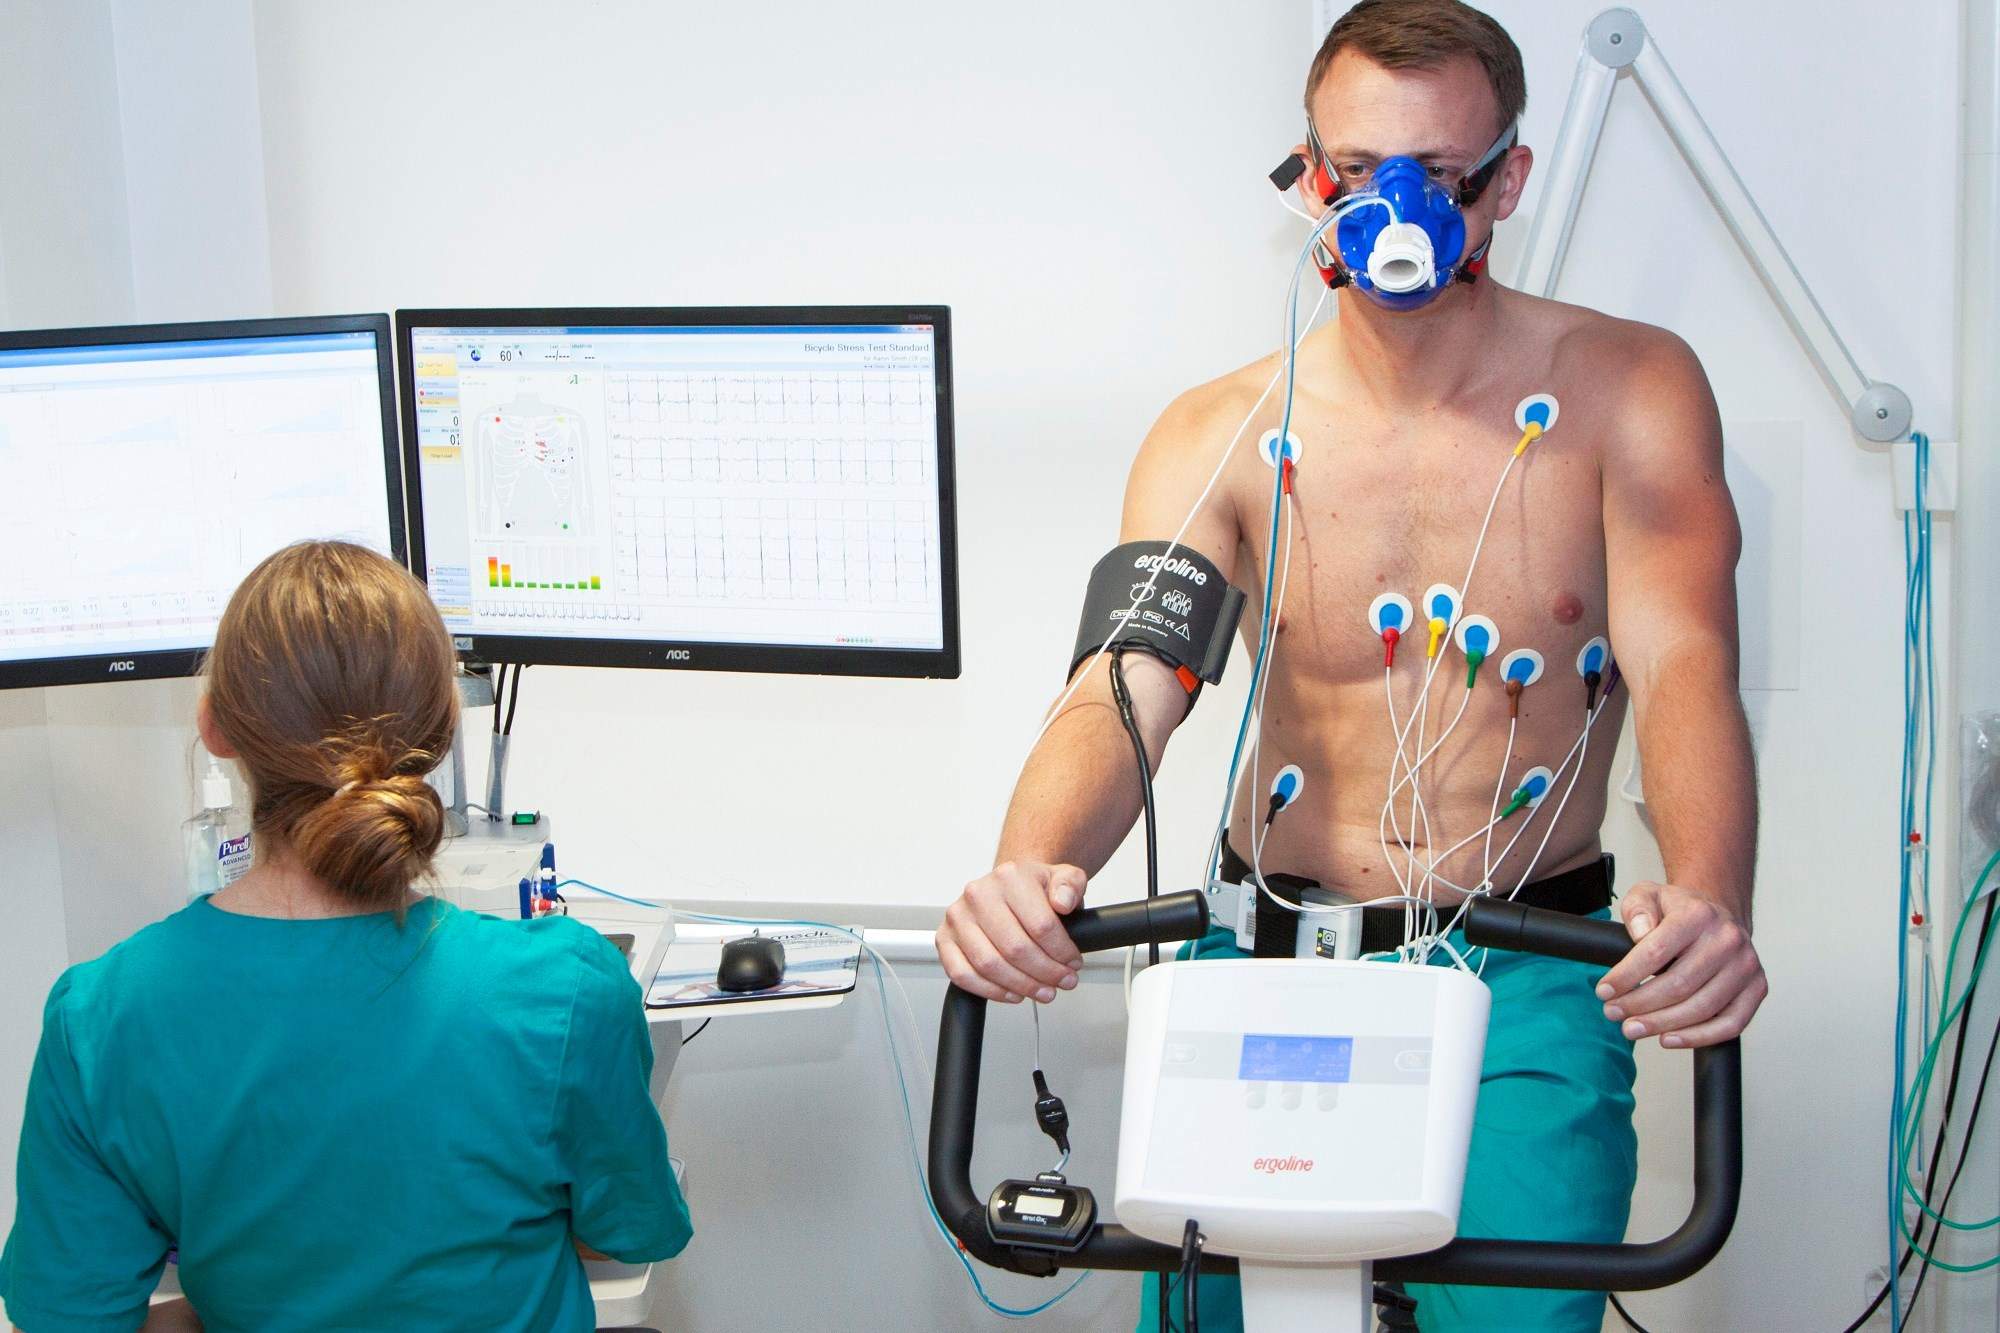 Improving Risk Stratification, Diagnostic Accuracy in PAH With Cardiopulmonary Exercise Testing